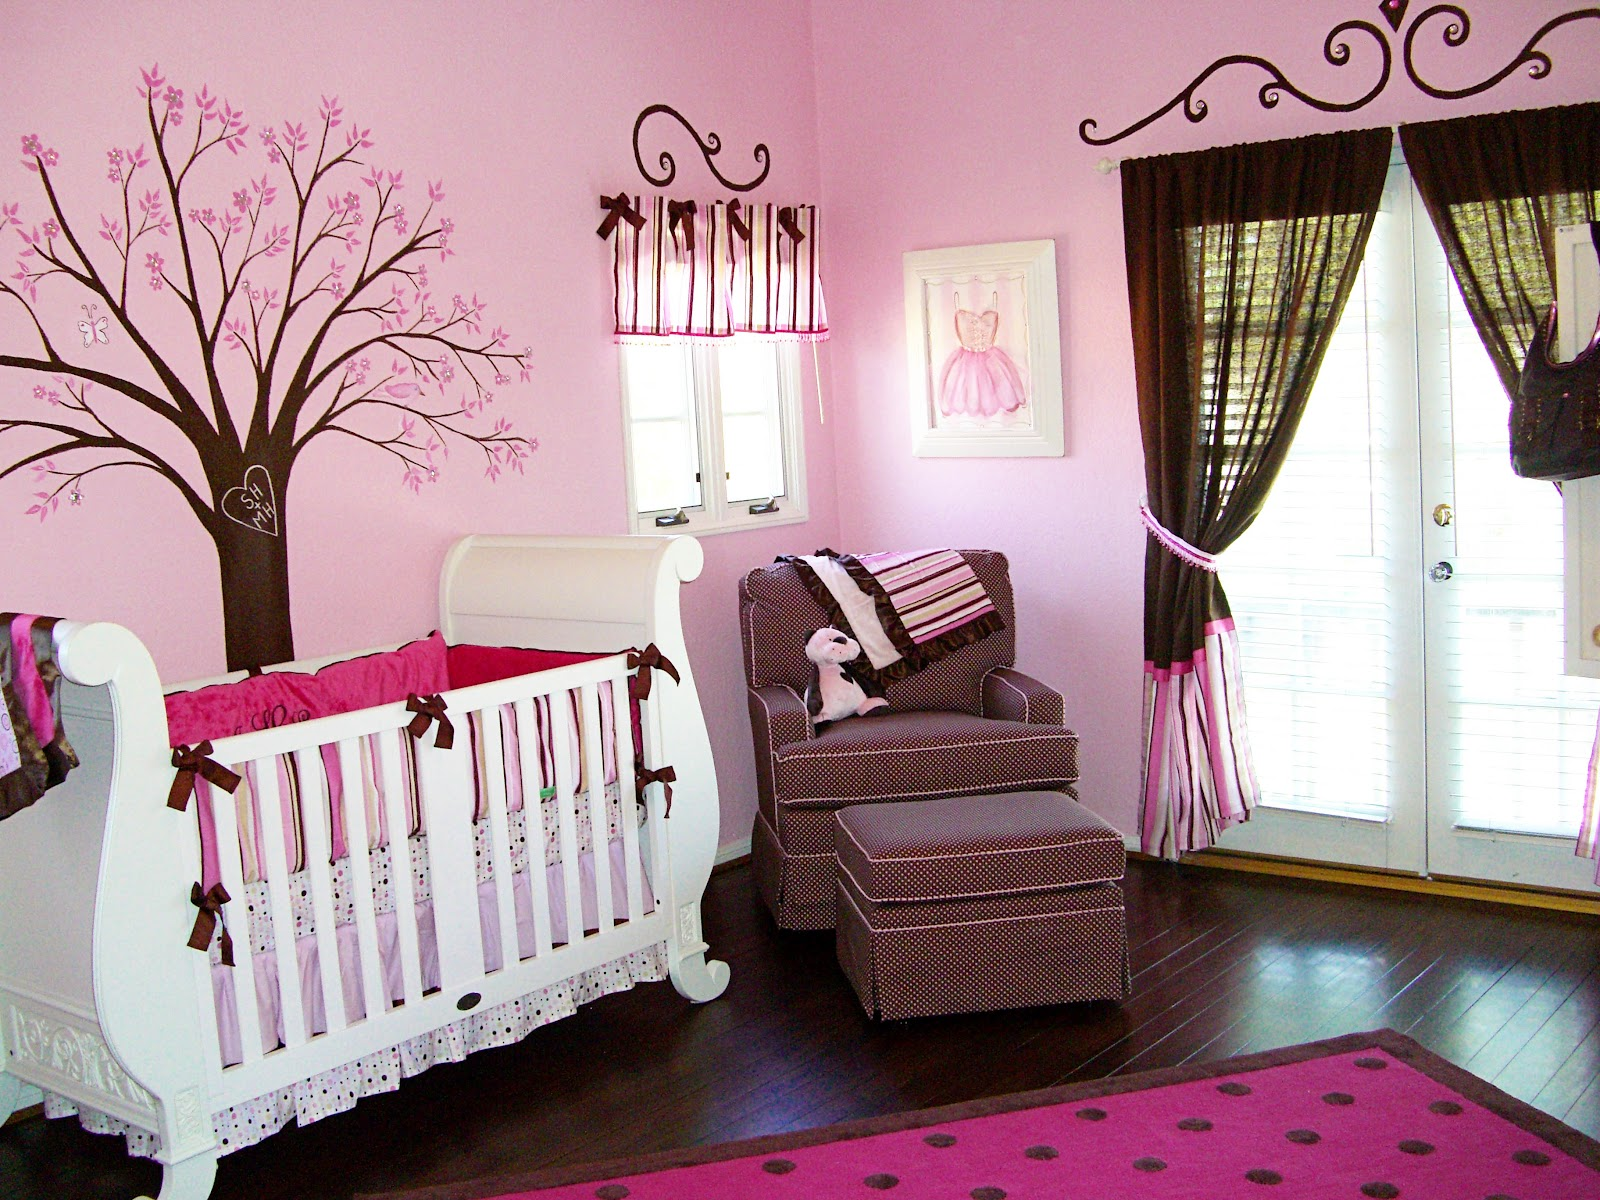 Full pink color girl baby room ideas decorate Baby girl room ideas